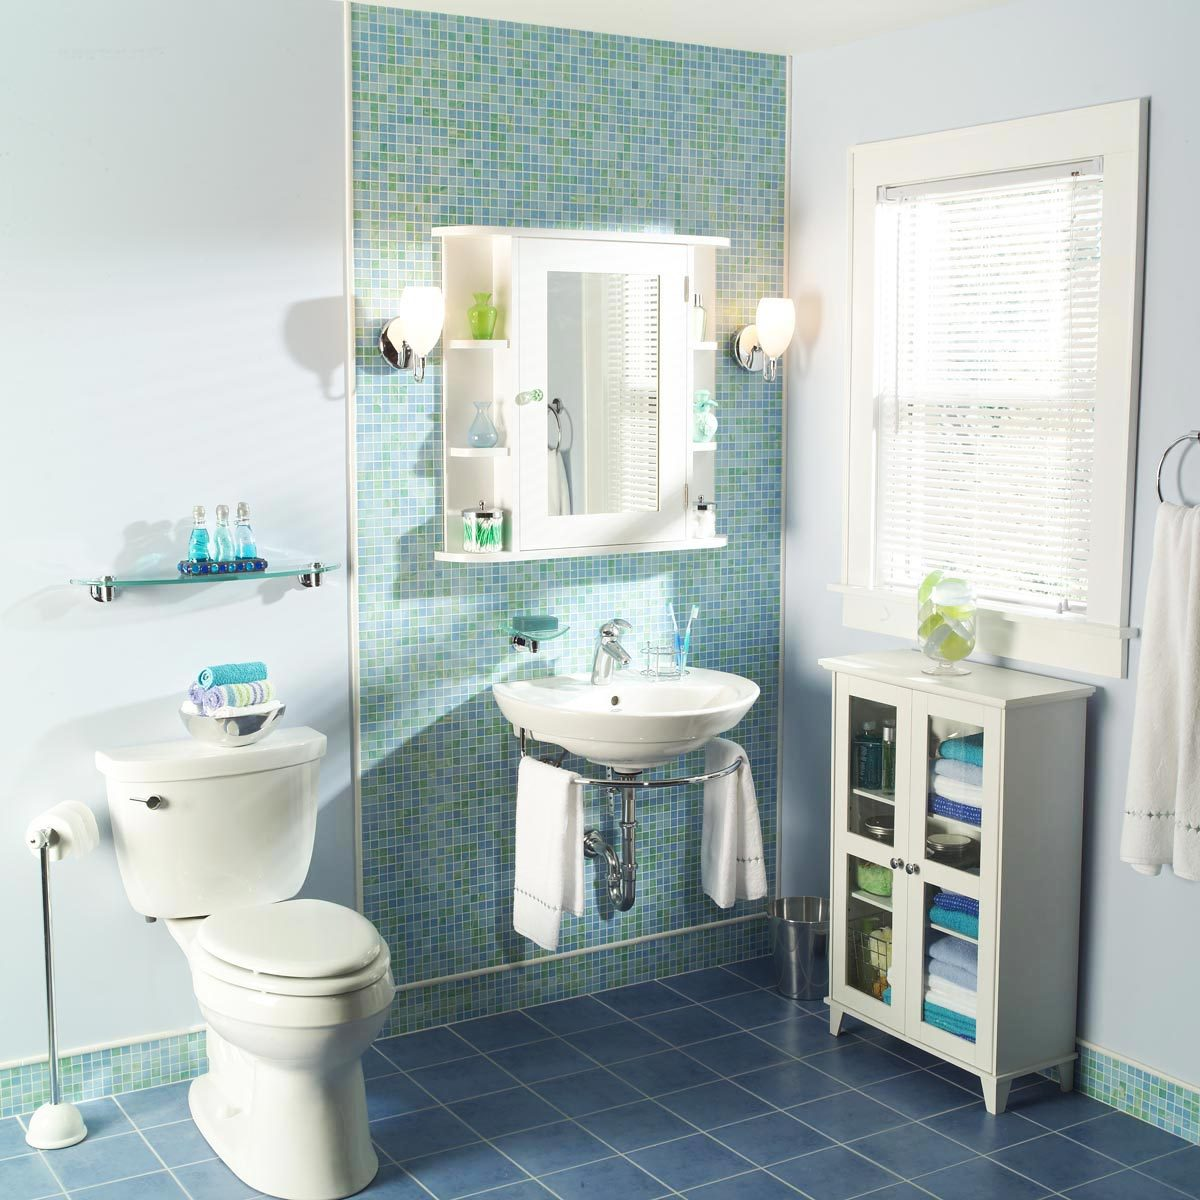 Small Bathroom Makeover 7 Before And After Bathroom Makeovers You Can Do In A Weekend